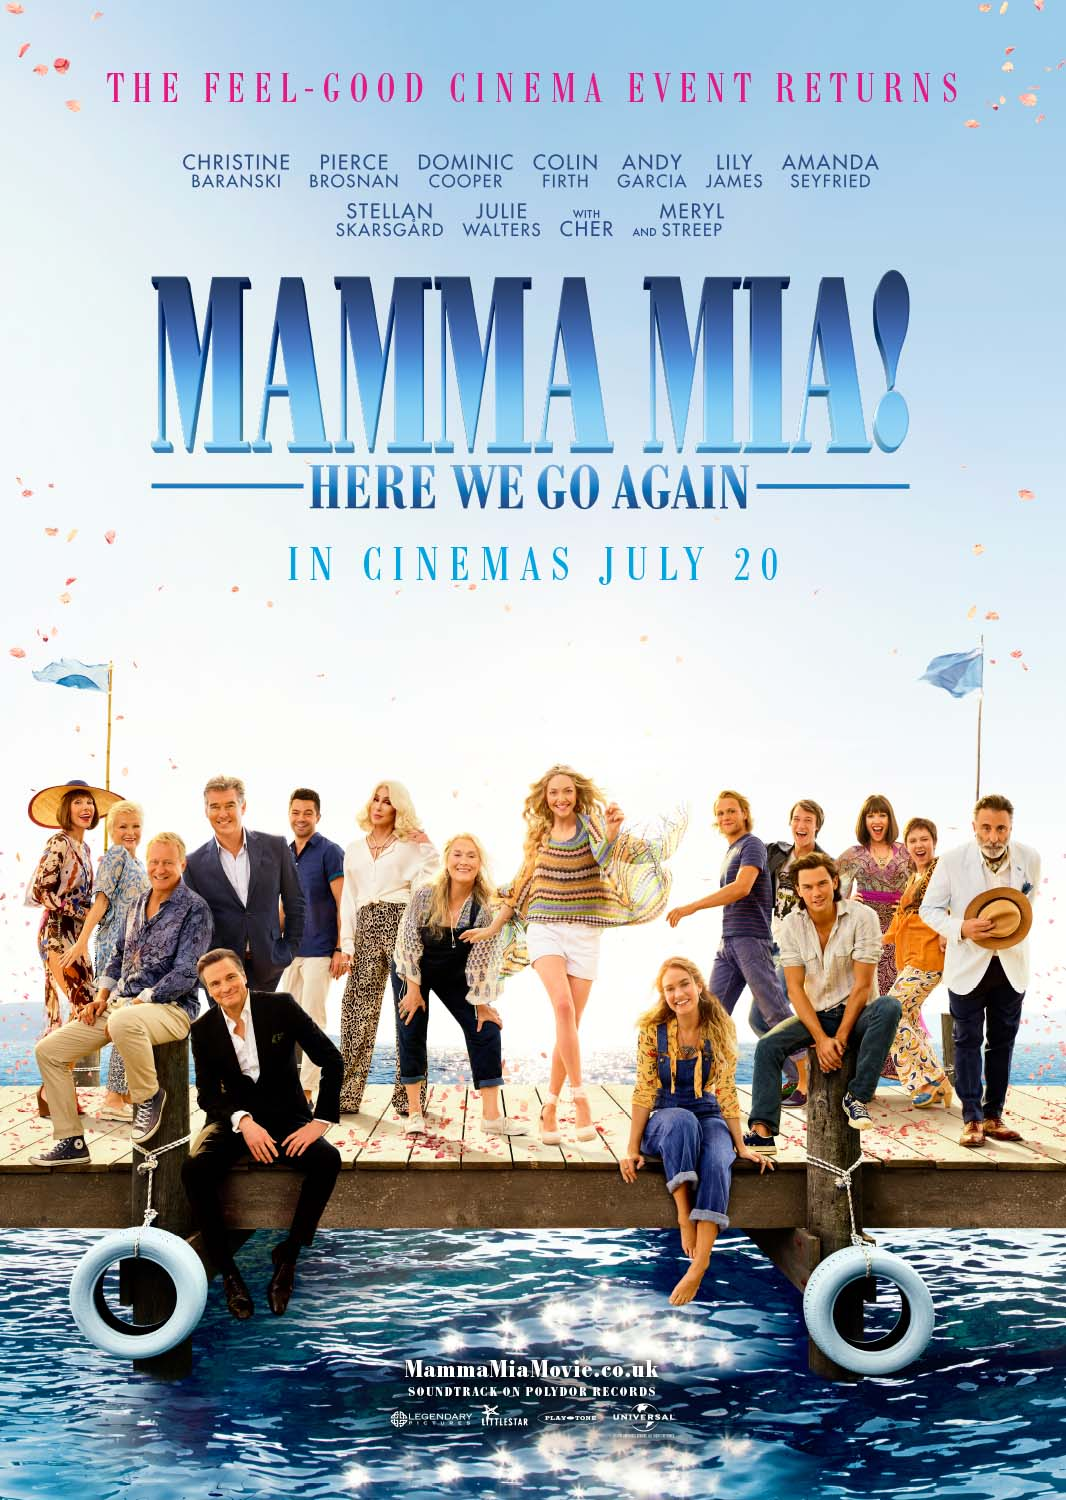 Check out the latest poster and trailer for Mamma Mia! Here We Go Again which is heading to UK Cinemas this July